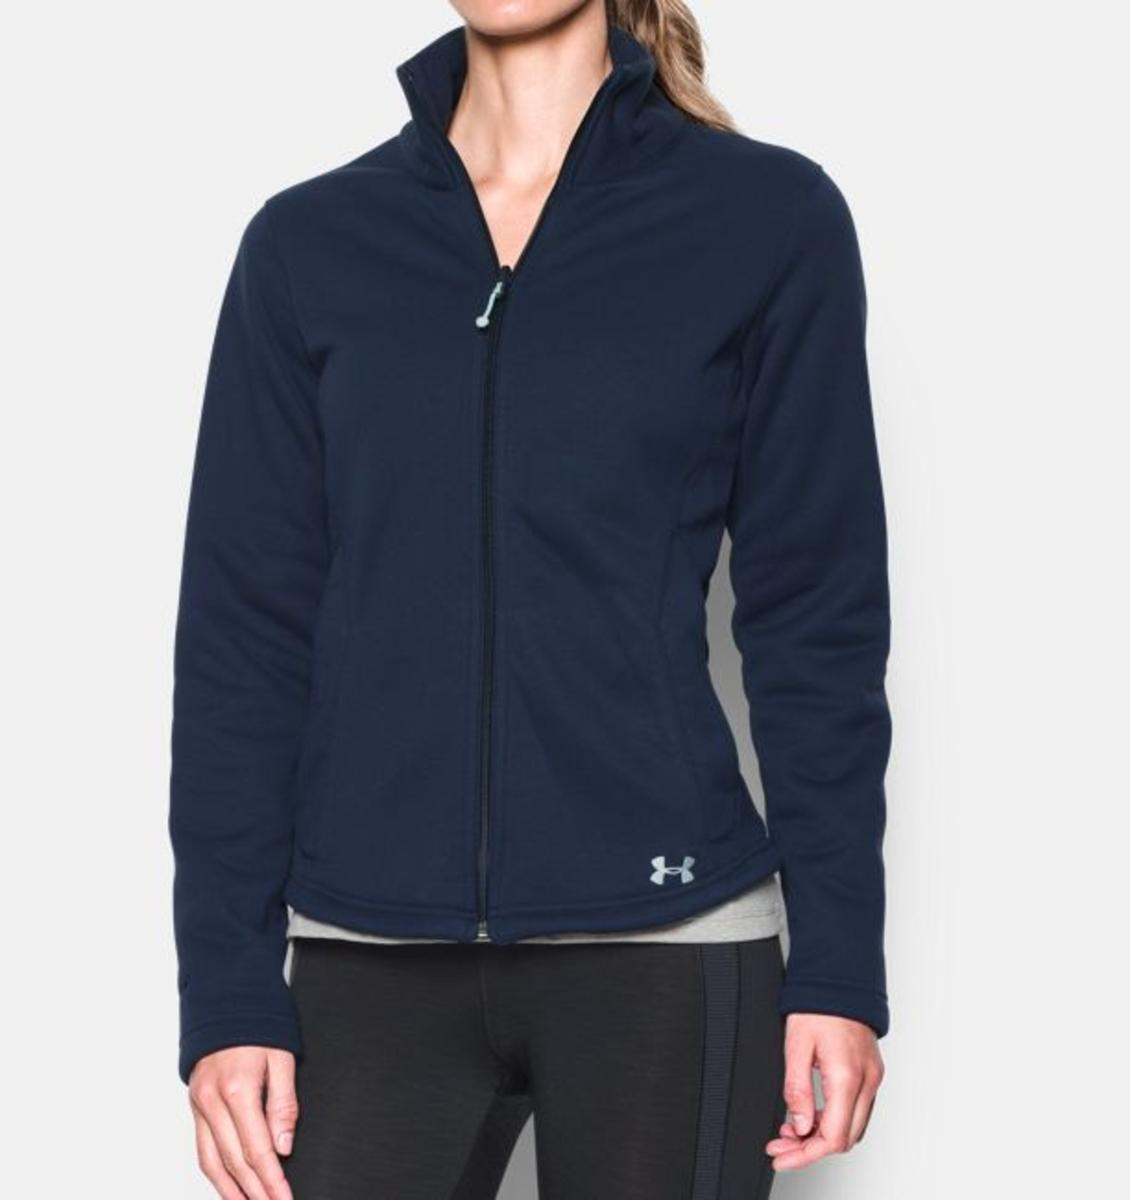 8346d05a Under Armour Women's UA ColdGear Infrared Sienna 3-In-1 Jacket - The ...